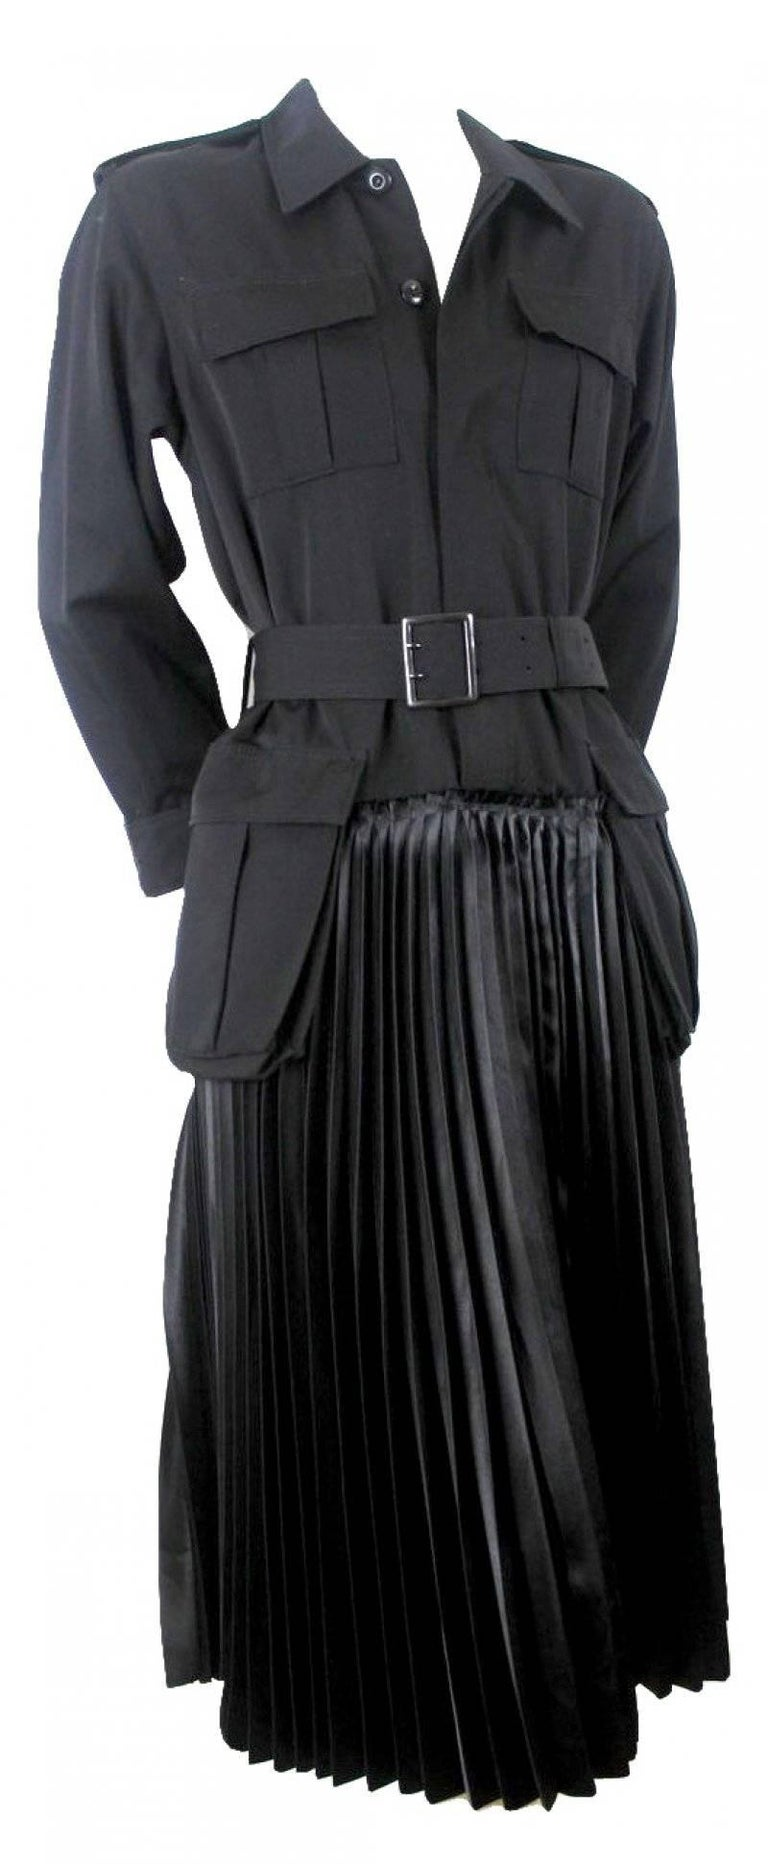 Junya Watanabe 2006 Collection Military Dress In Excellent Condition For Sale In Bath, GB